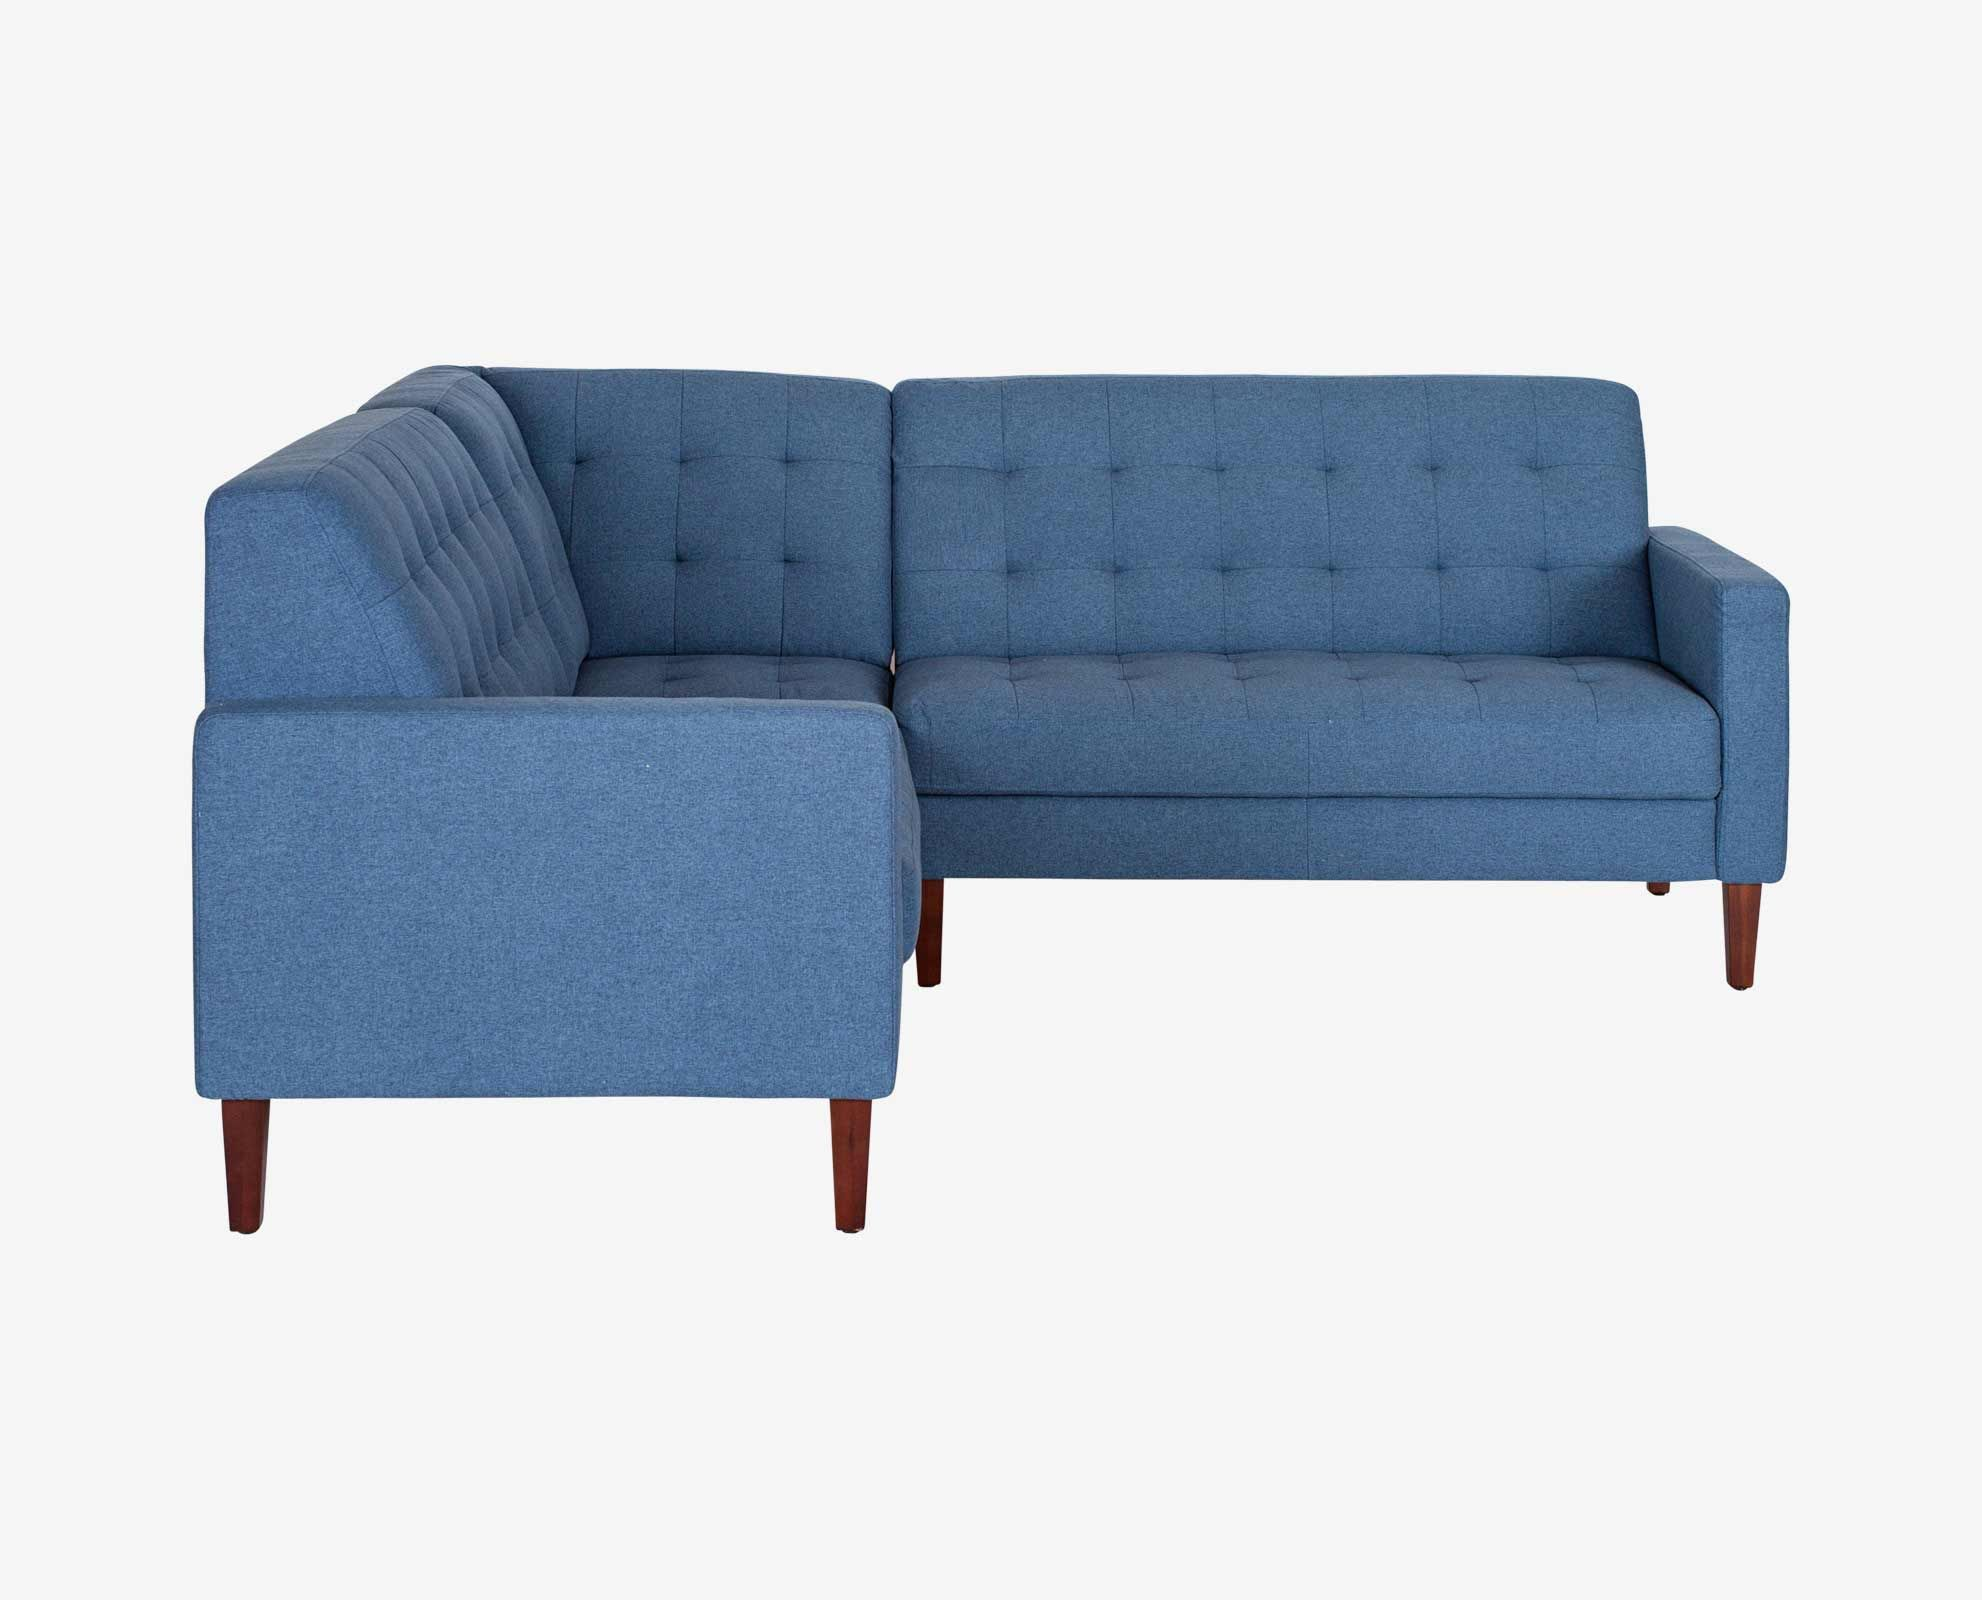 Camilla Corner Sectional Airstream house Pinterest